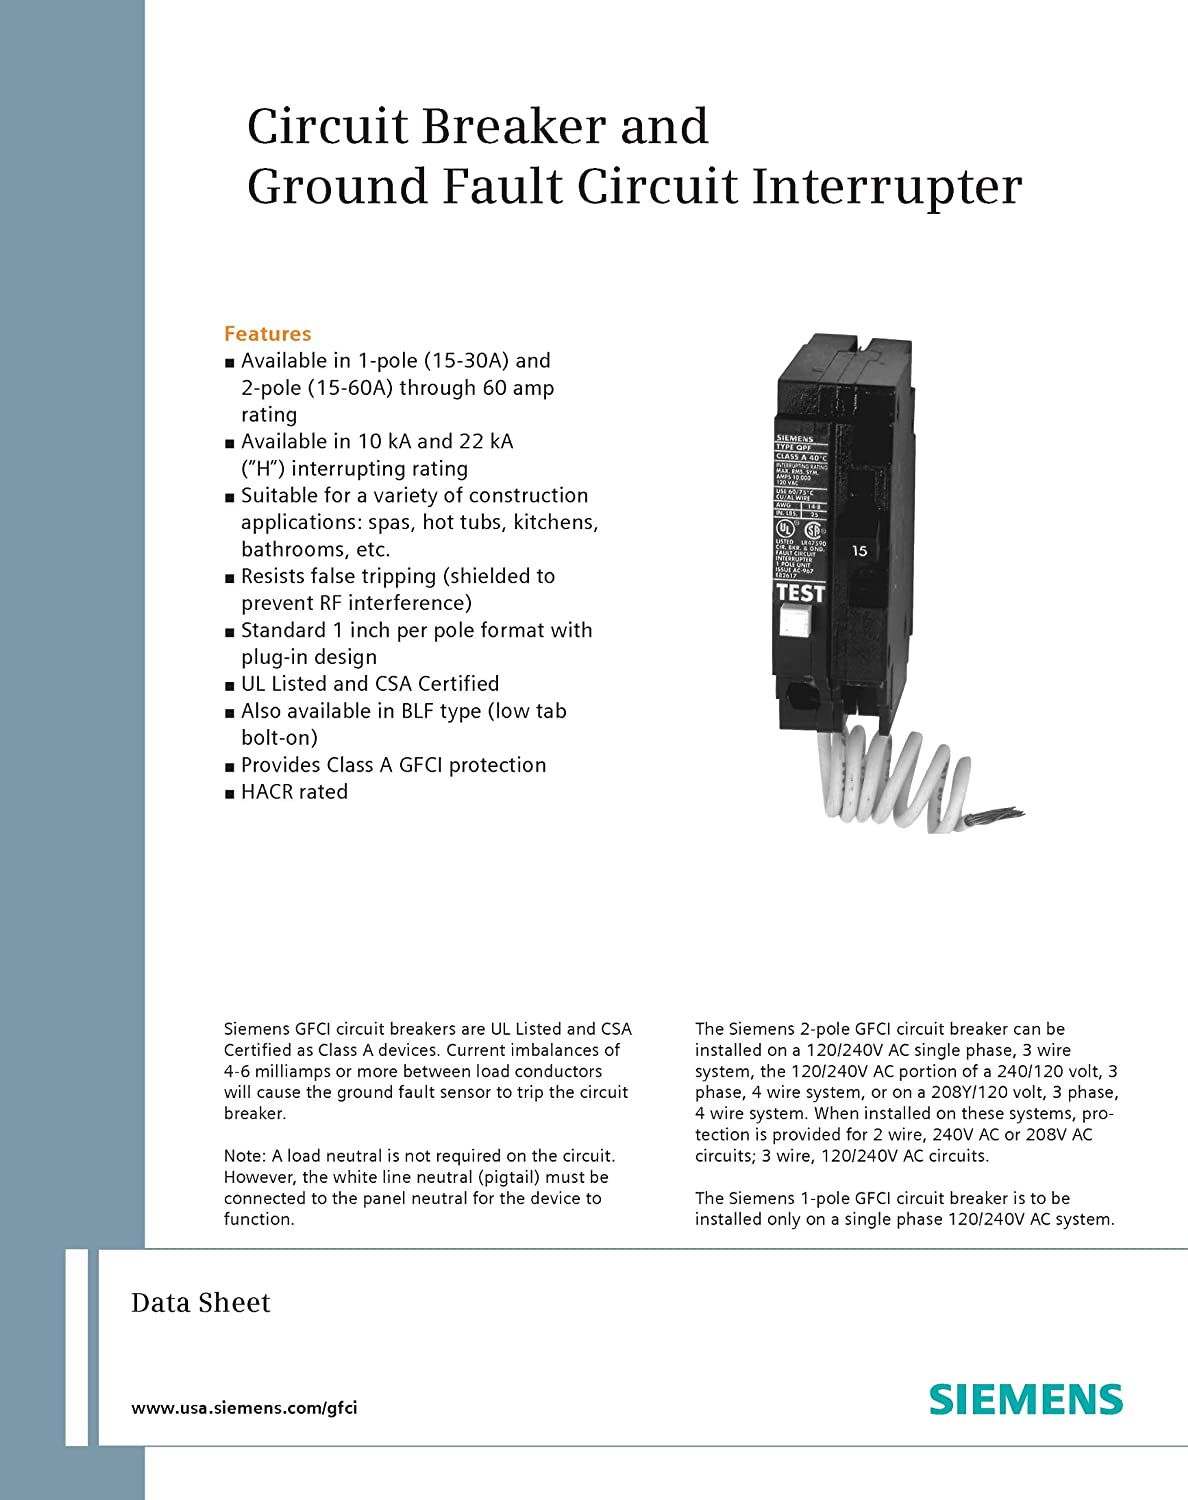 81CNoPv8enL._SL1500_ siemens qf220 20 amp 2 pole 240 volt ground fault circuit 2 pole gfci breaker wiring diagram at alyssarenee.co